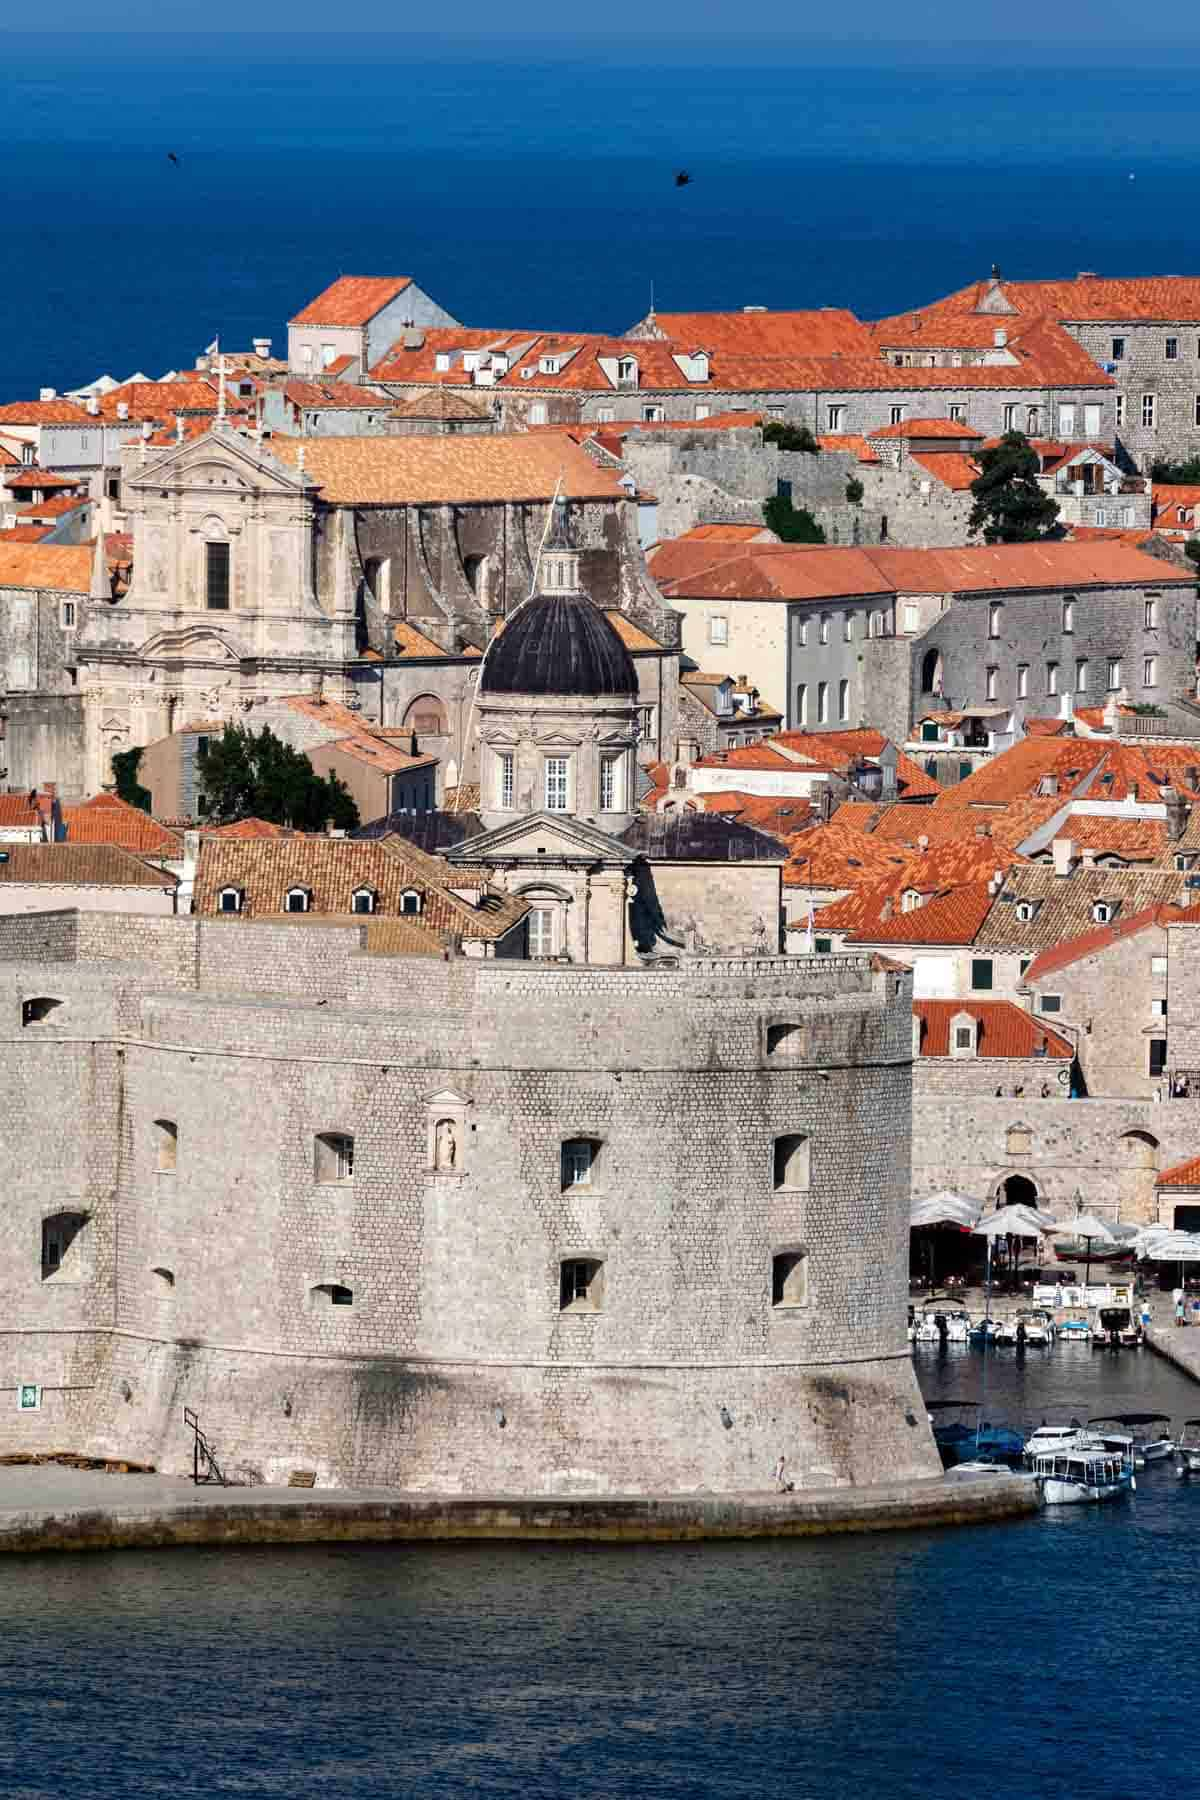 man-made structures in europe walled city of dubrovnik